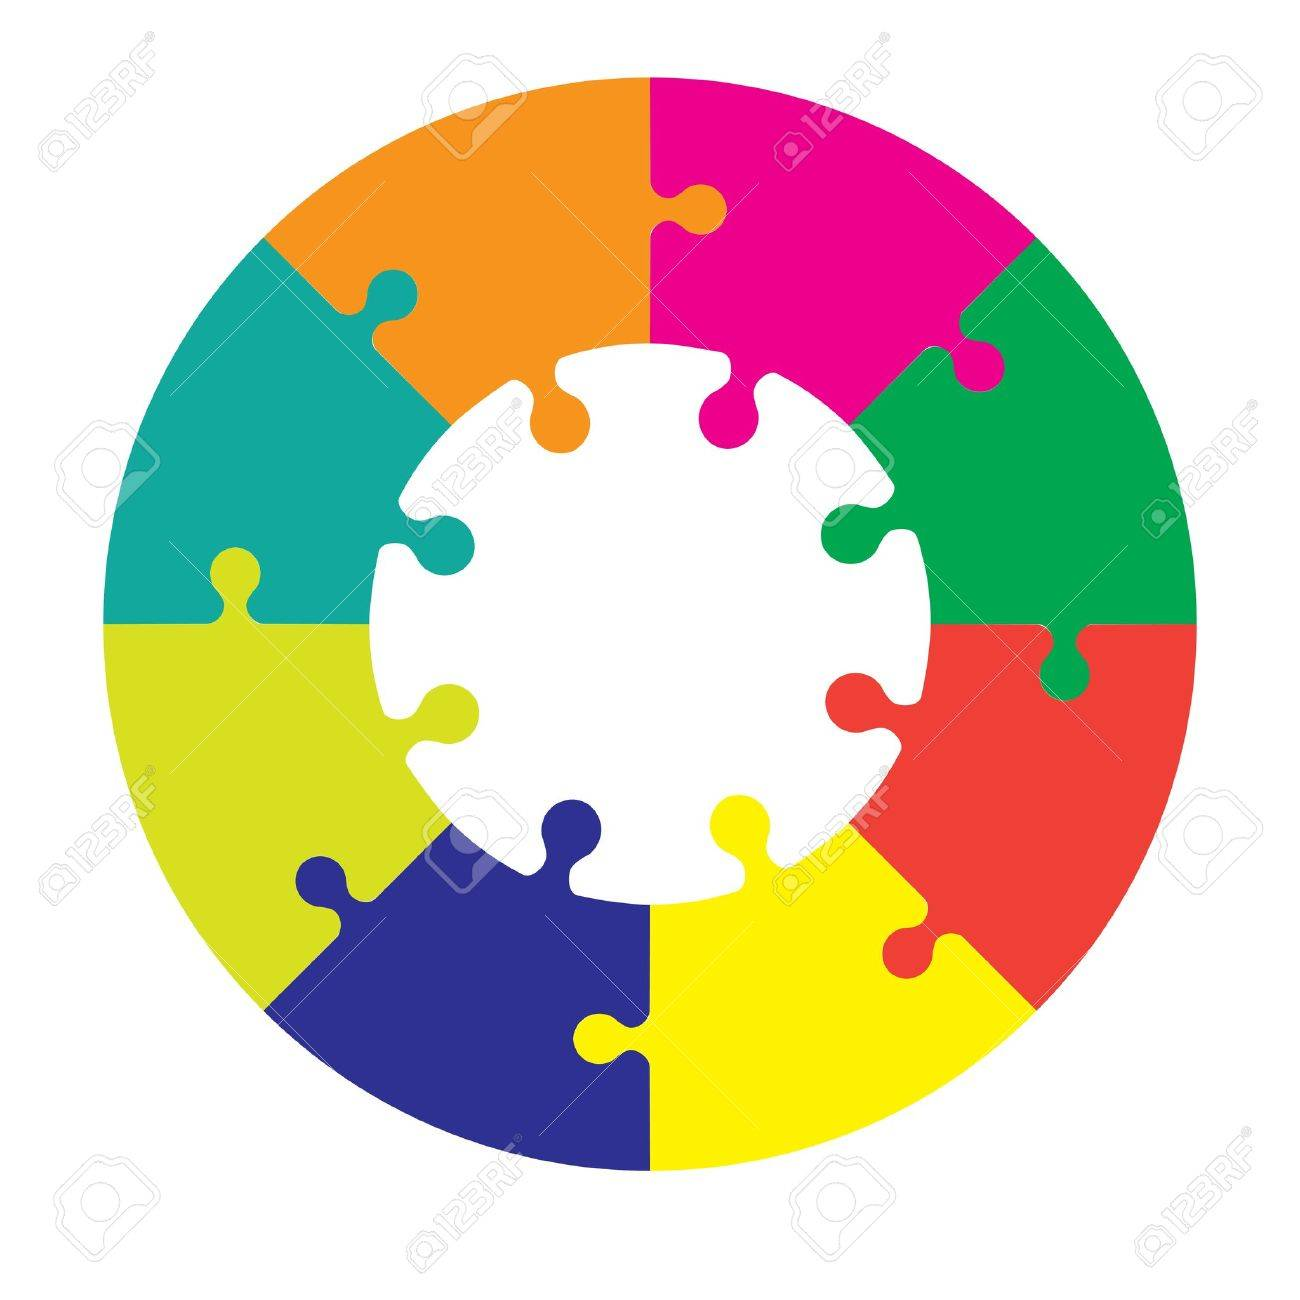 Eight piece jigsaw wheel in different colors Stock Vector - 19985329